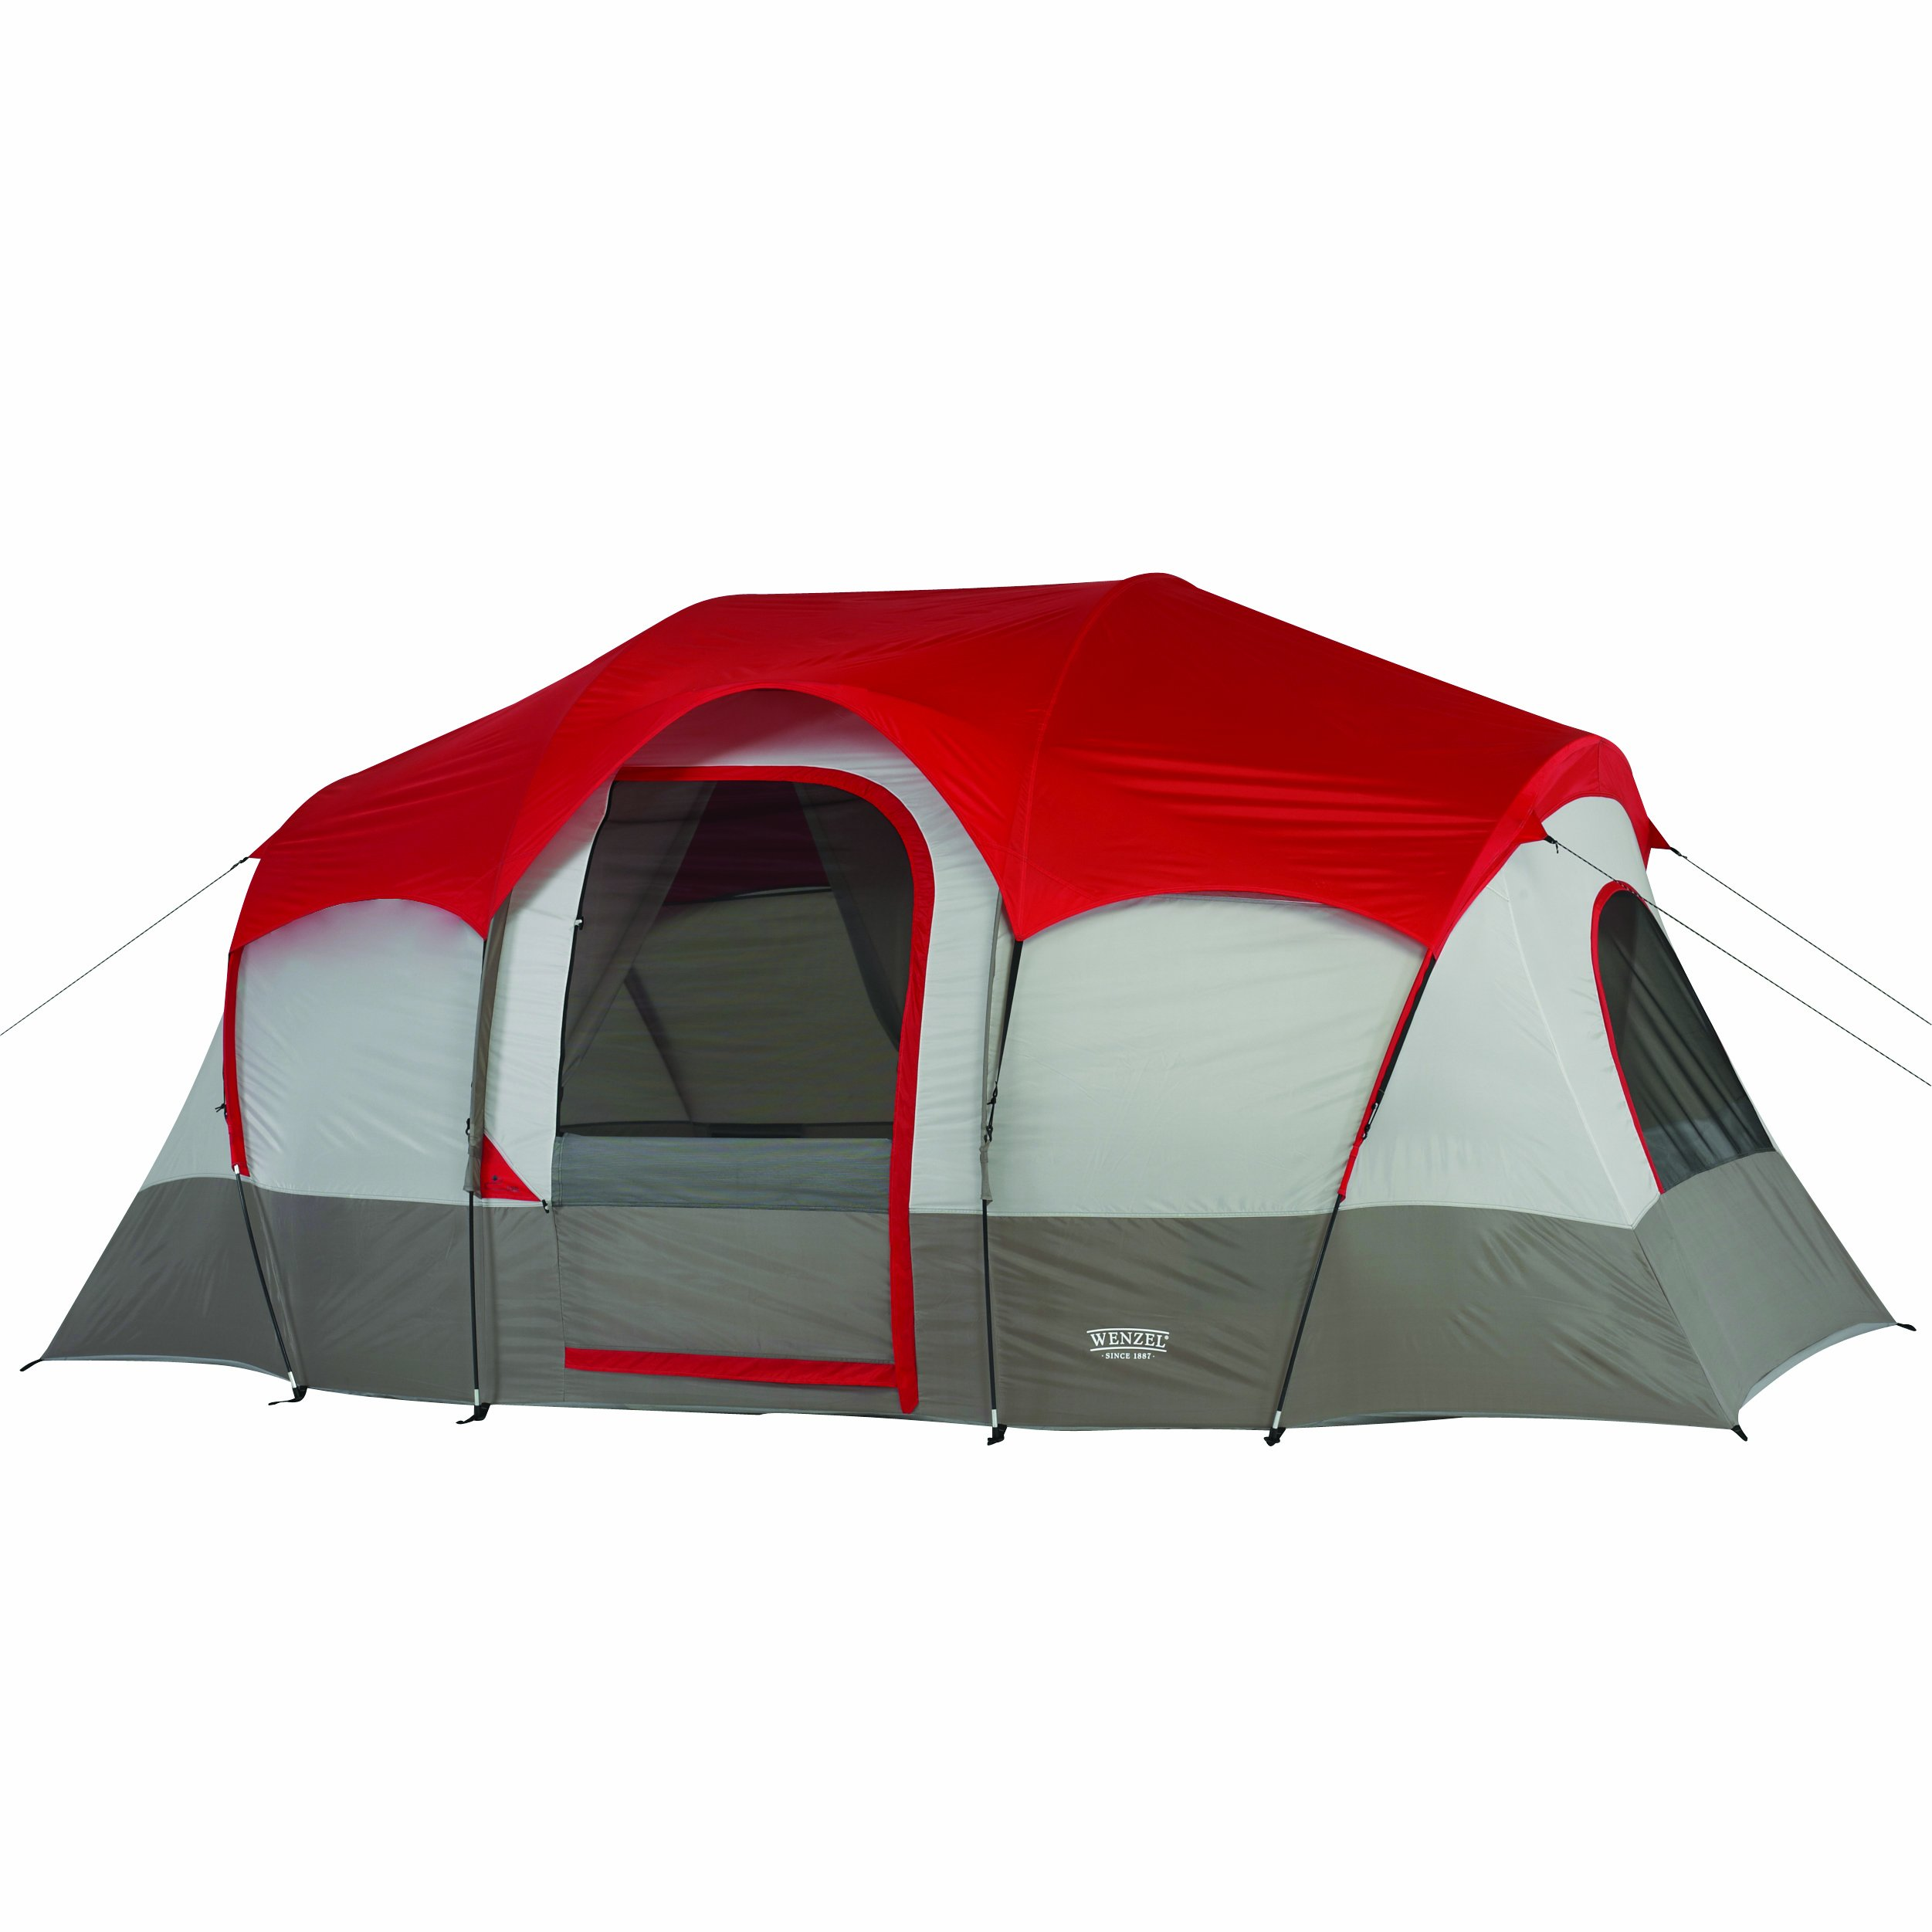 Wenzel 7 Person Tent